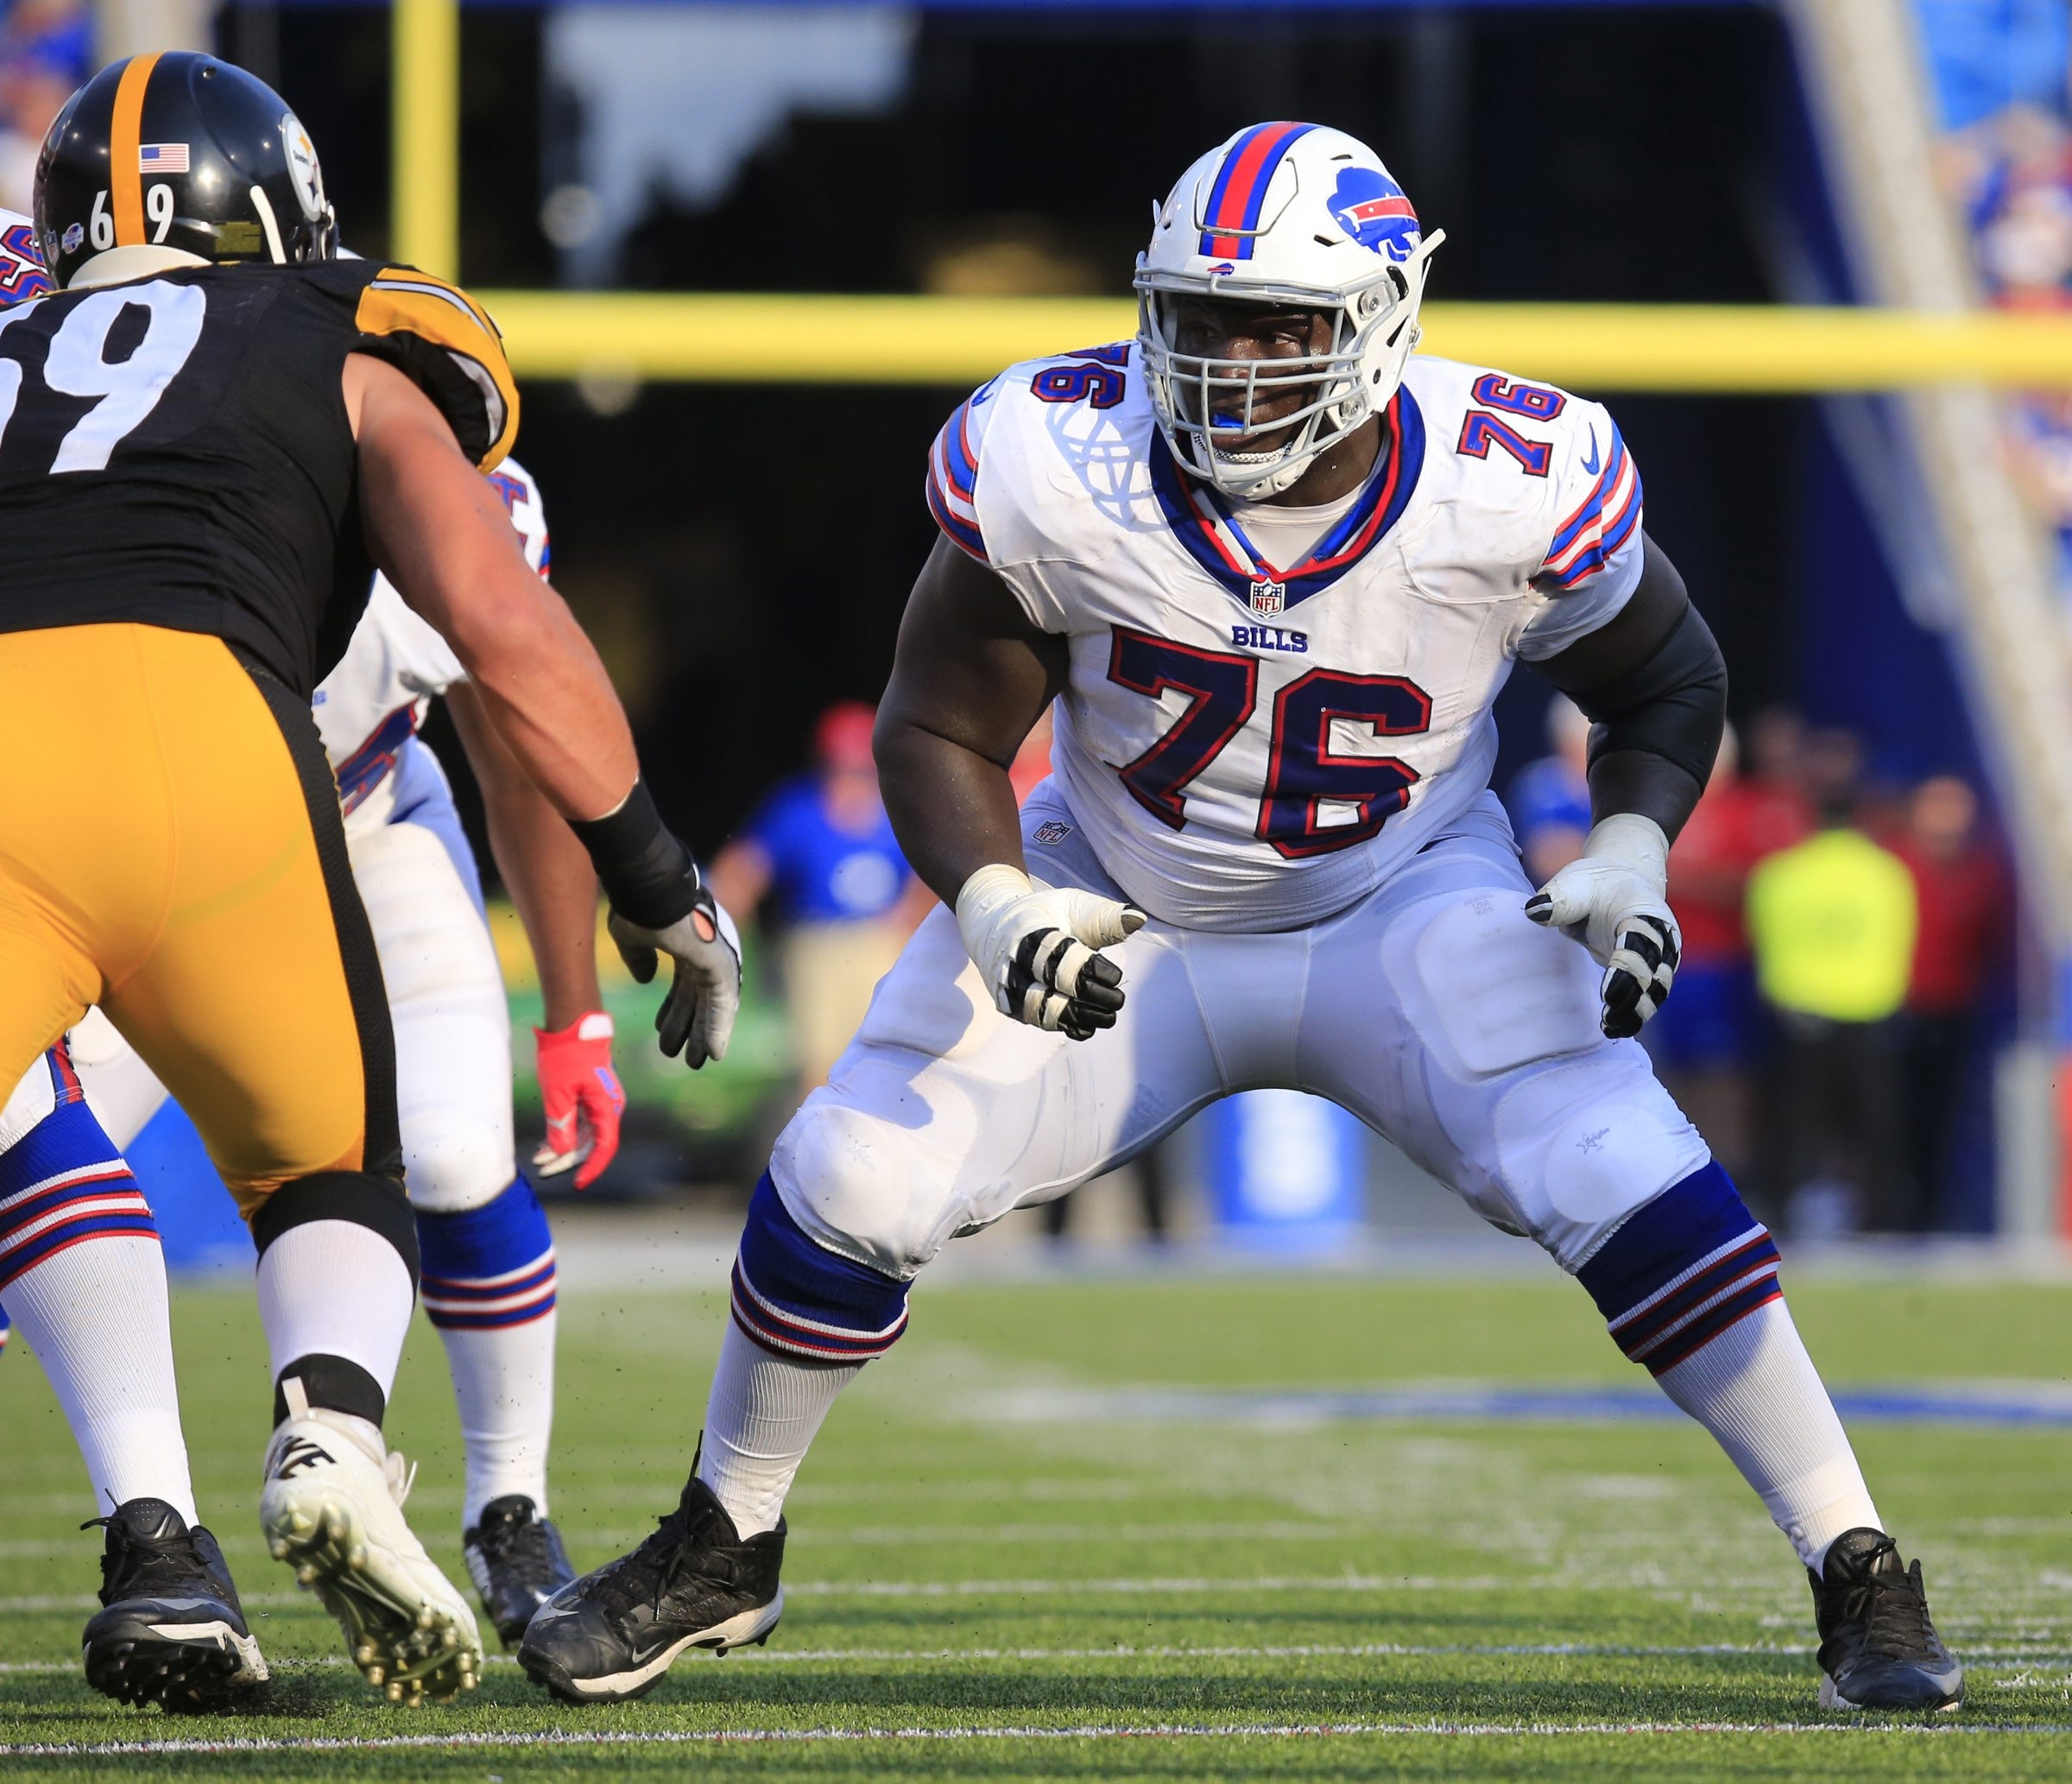 Buffalo Bills John Miller during second half action against the Pittsburgh Steelers at Ralph WIlson Stadium on Saturday, Aug. 29, 2015.  (Harry Scull Jr./Buffalo News)